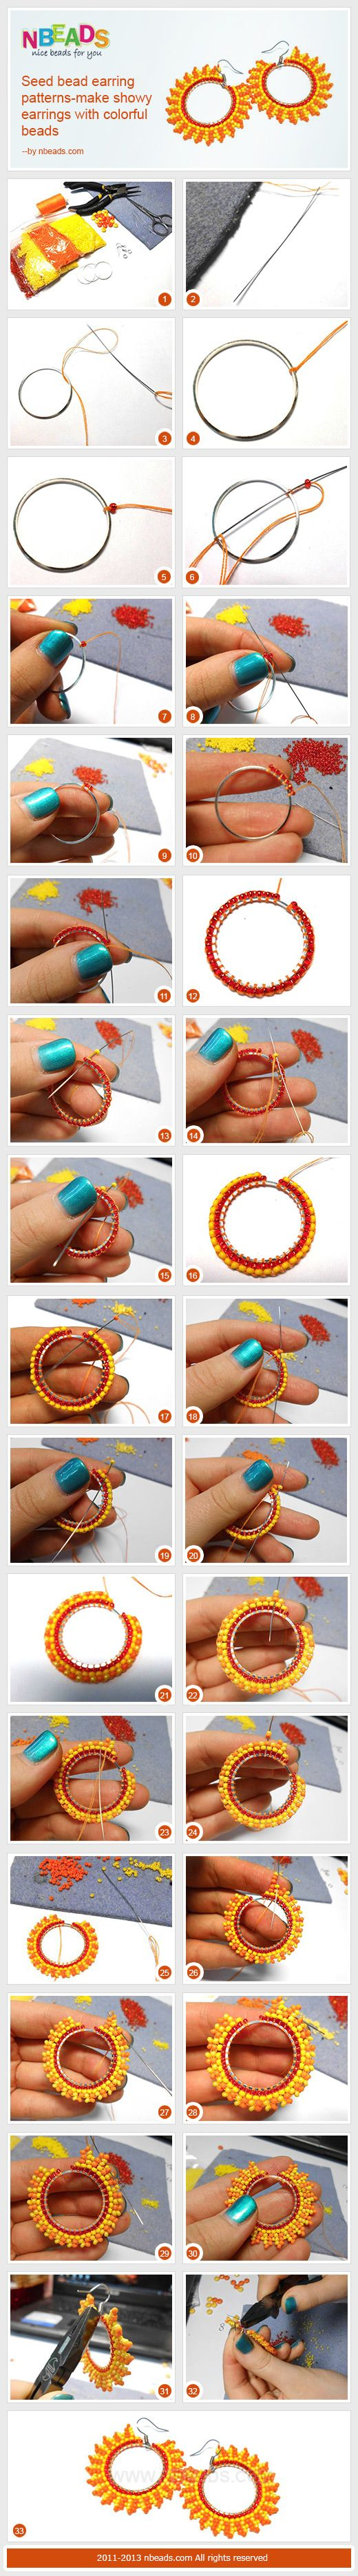 seed bead earring patterns-make showy earrings with colorful beads